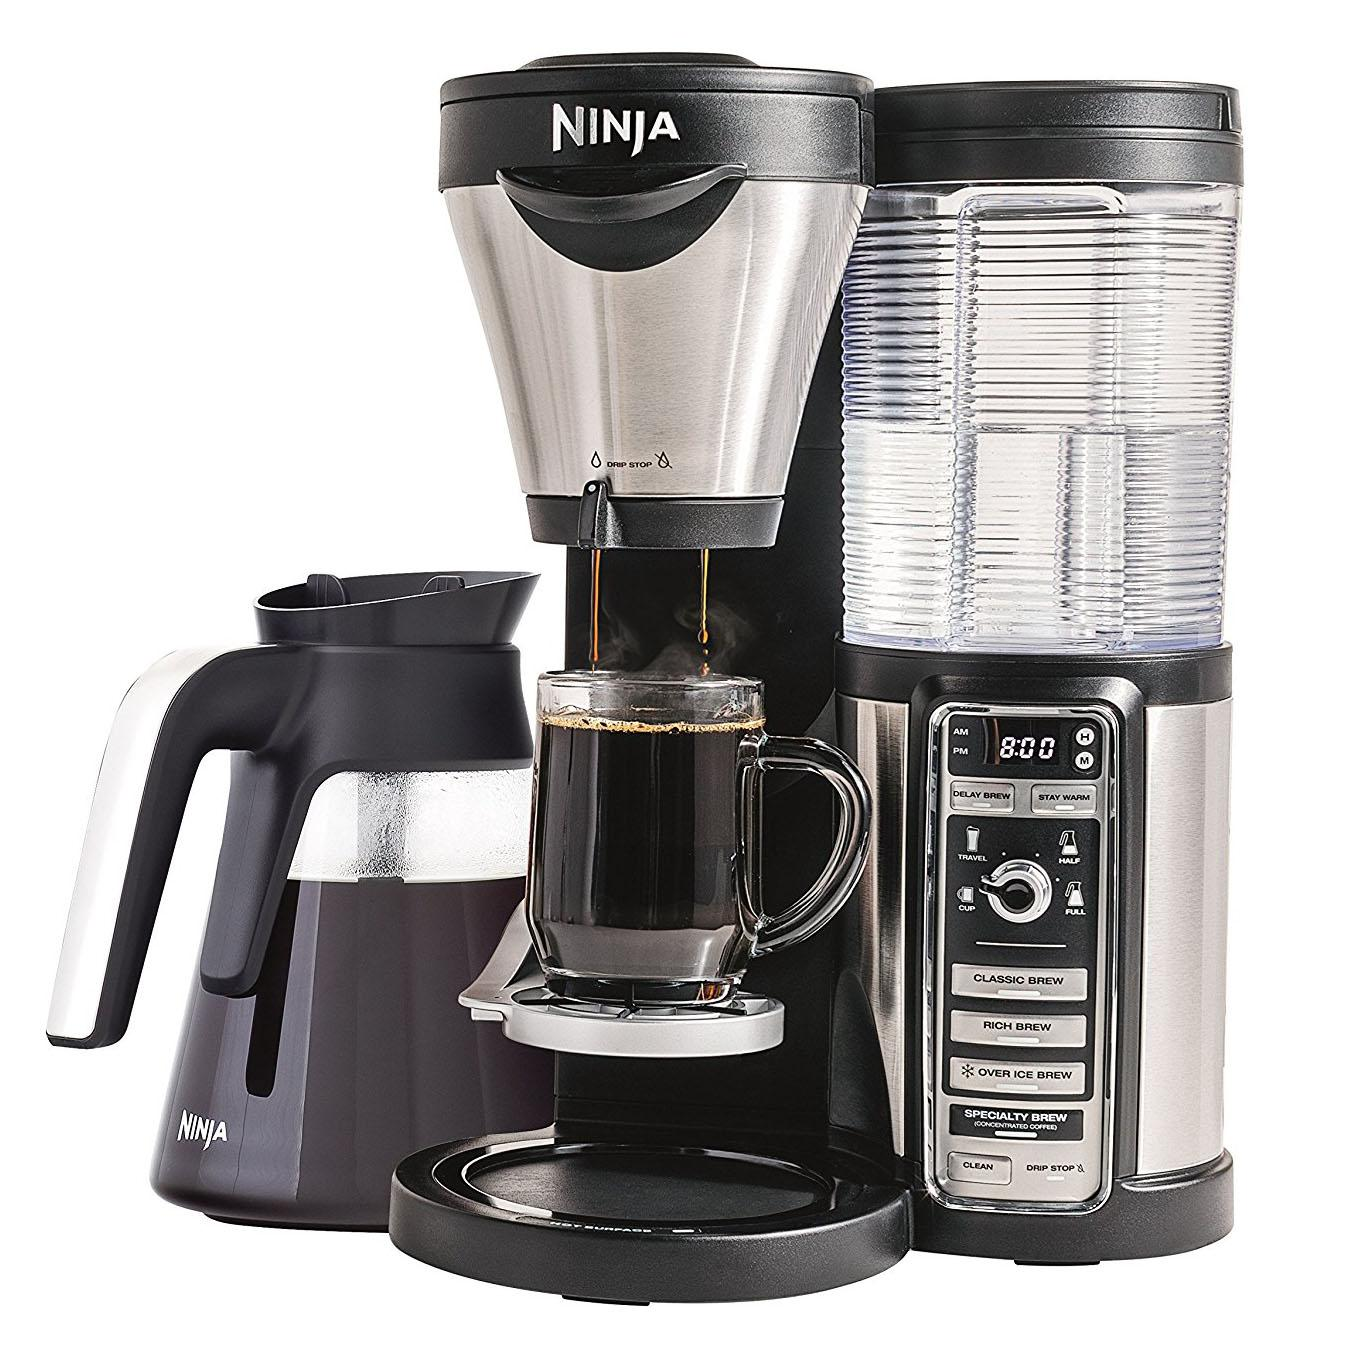 Ninja Coffee Bar Brewer with Glass Carafe for $109.99 Shipped